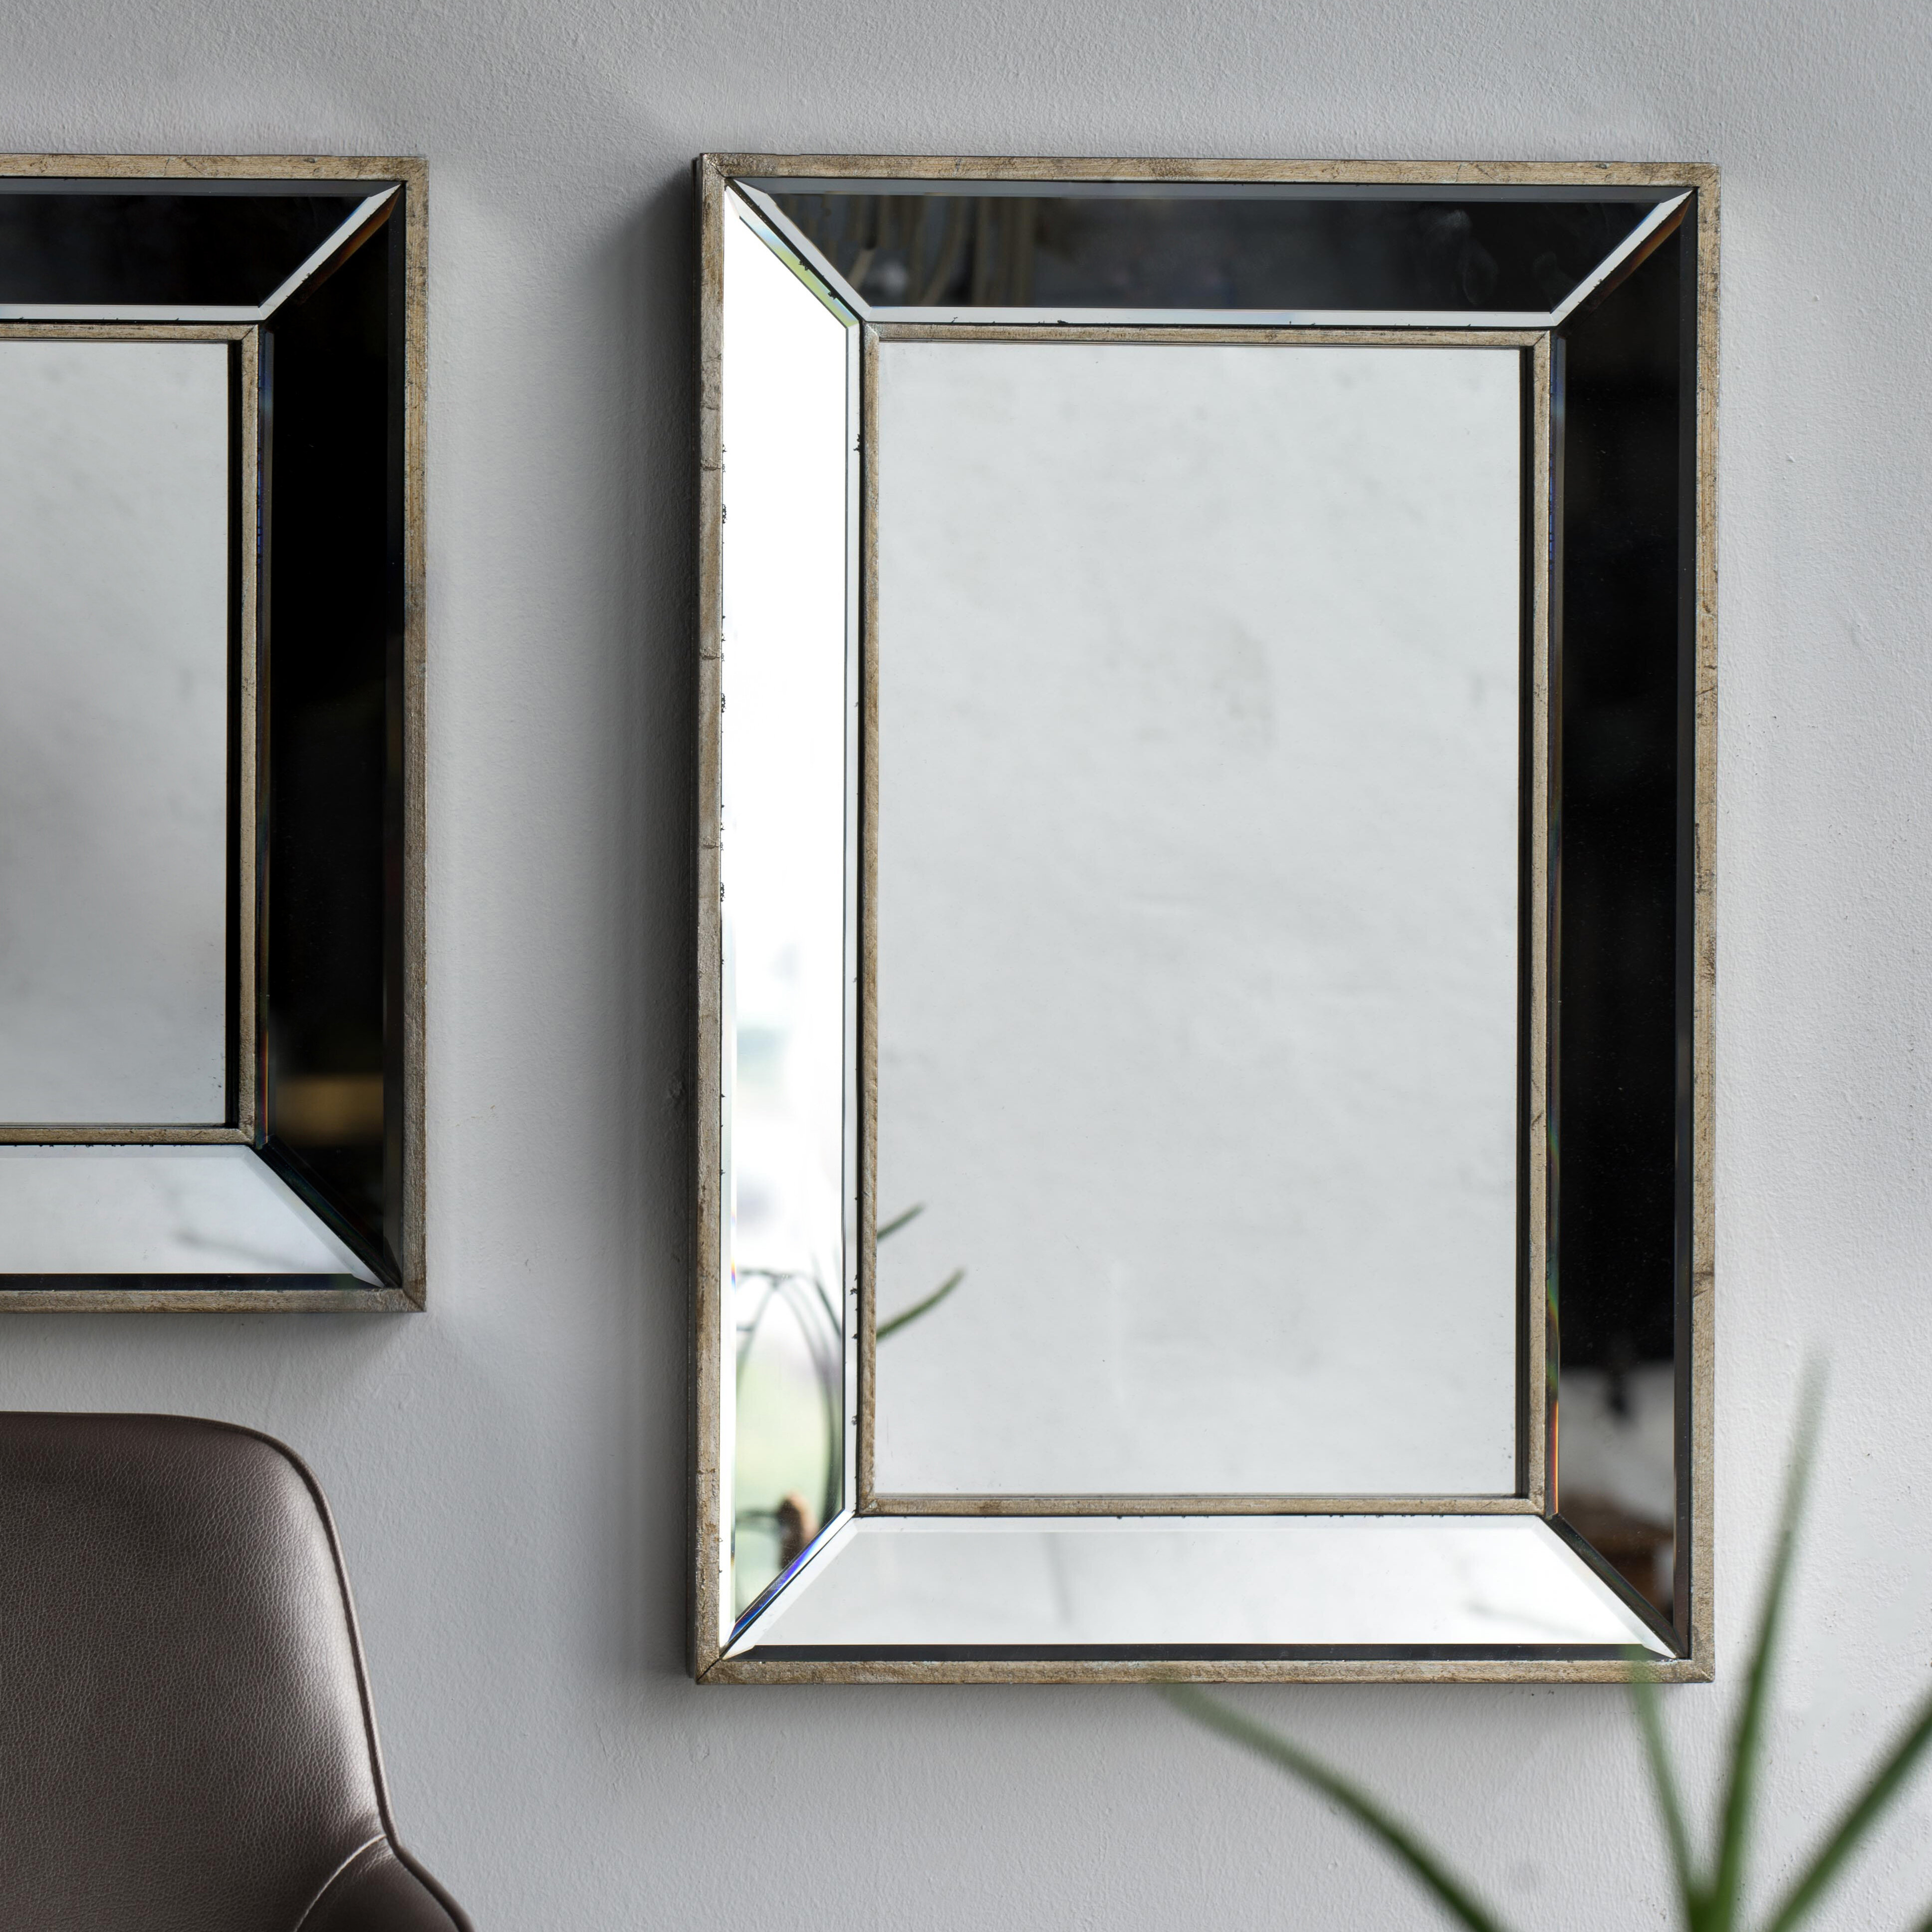 Kapp Rectangle Accent Wall Mirror Pertaining To Rectangle Accent Wall Mirrors (Photo 3 of 30)